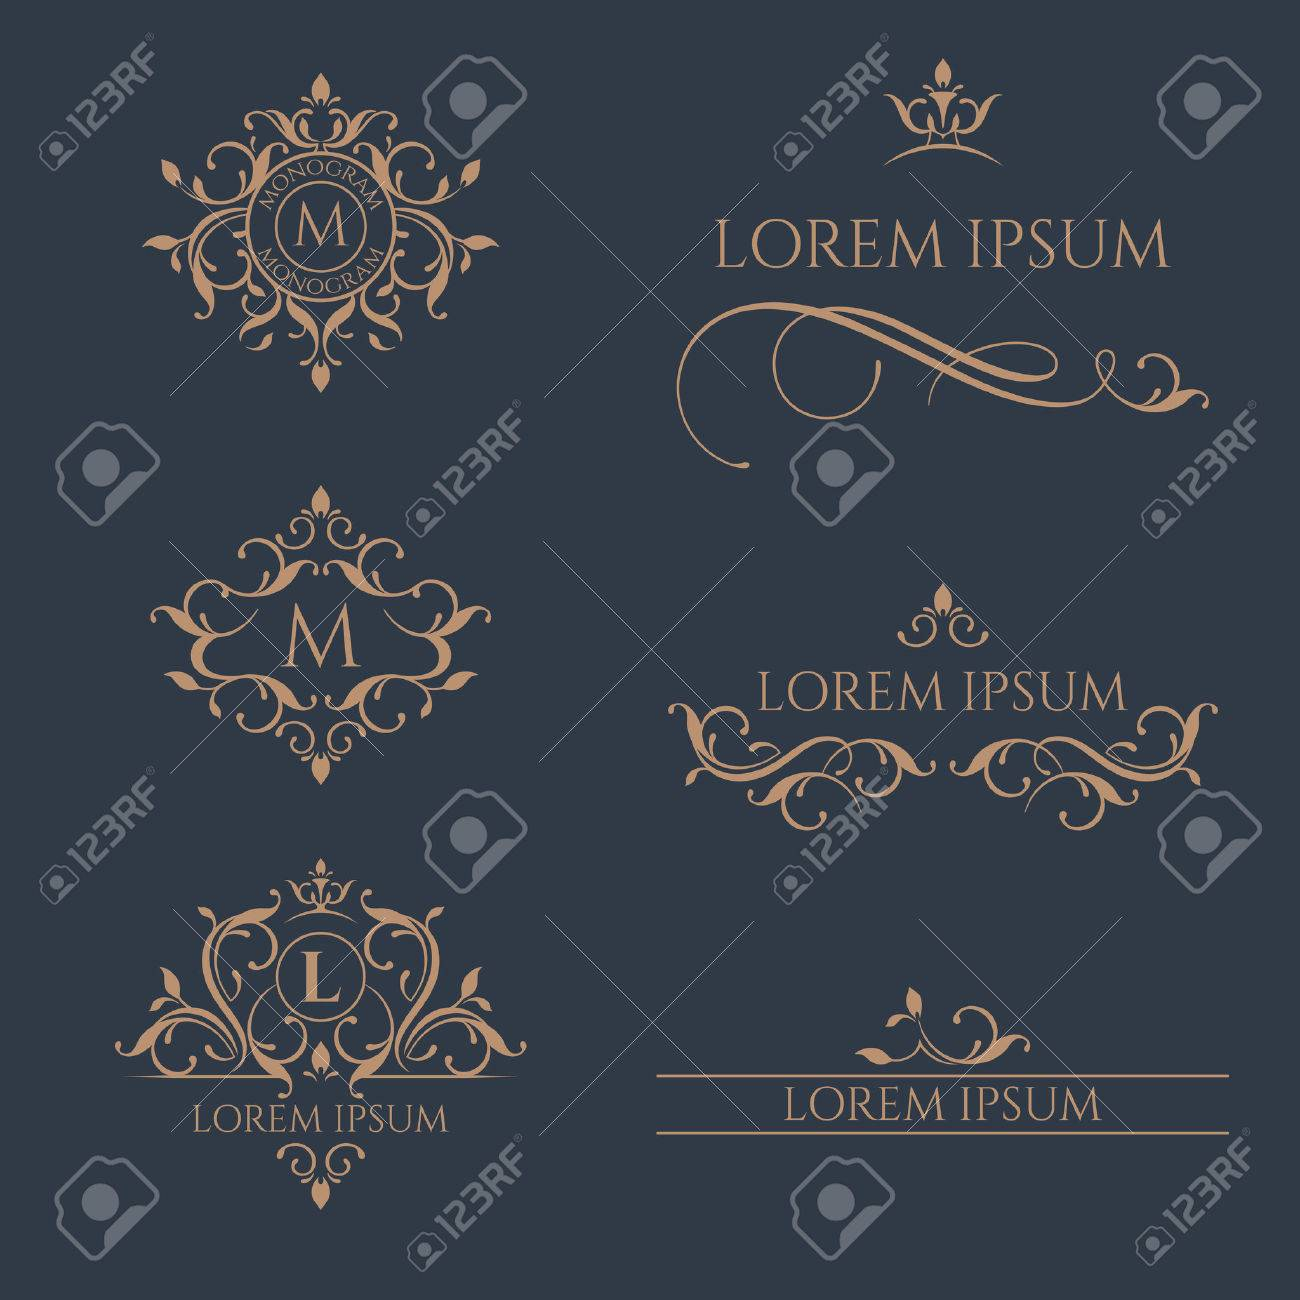 Floral monograms and borders, frames for cards, invitations, menus, labels. - 50021772